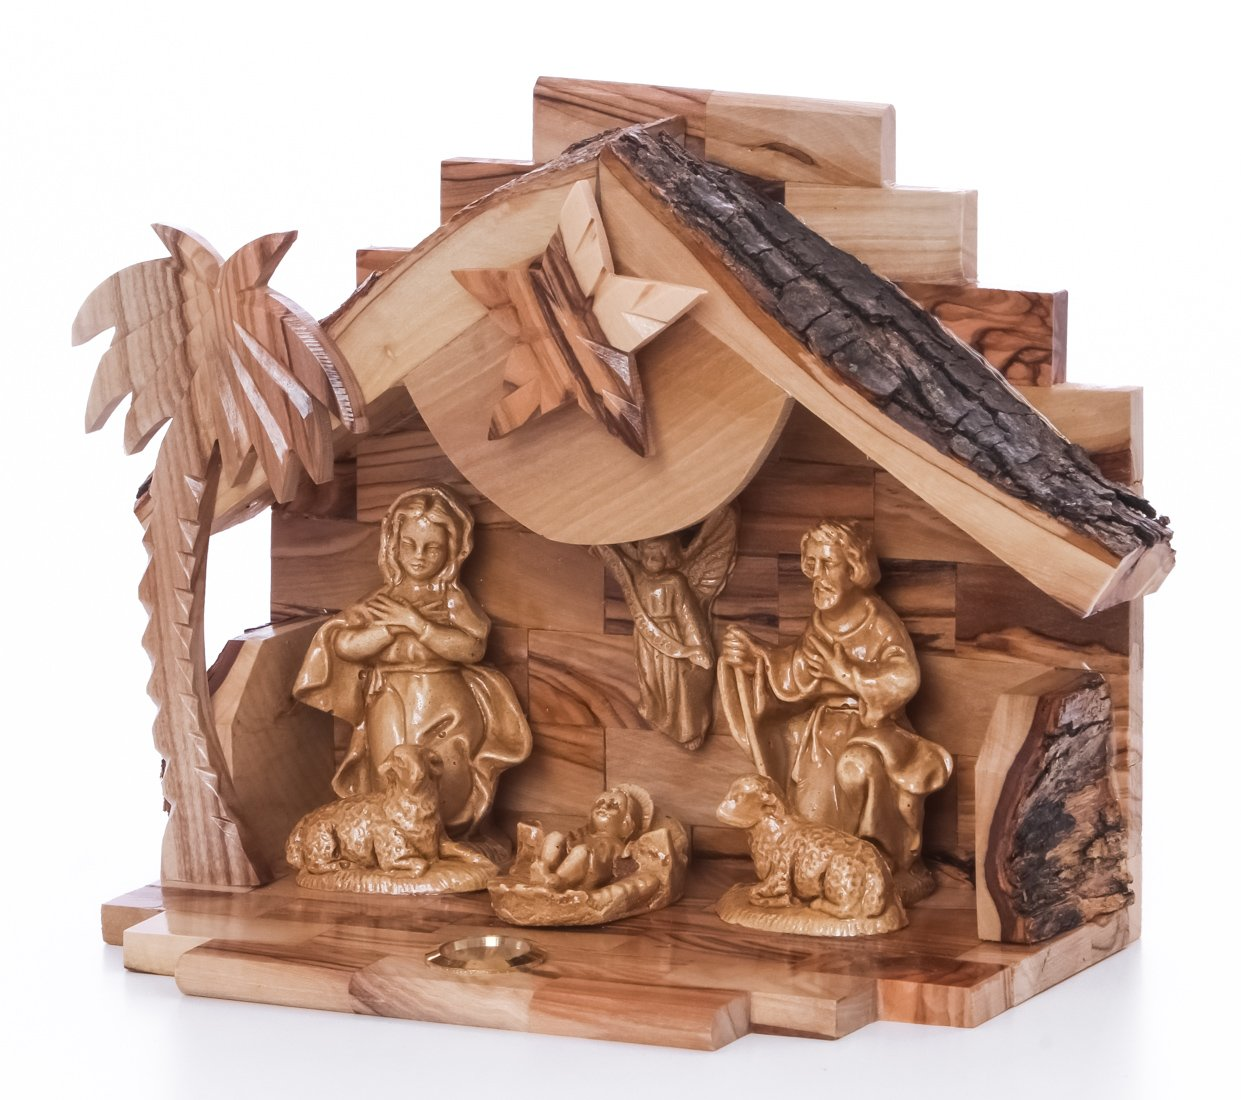 Zuluf Olive Wood Nativity with Ceramic Figures NAT021